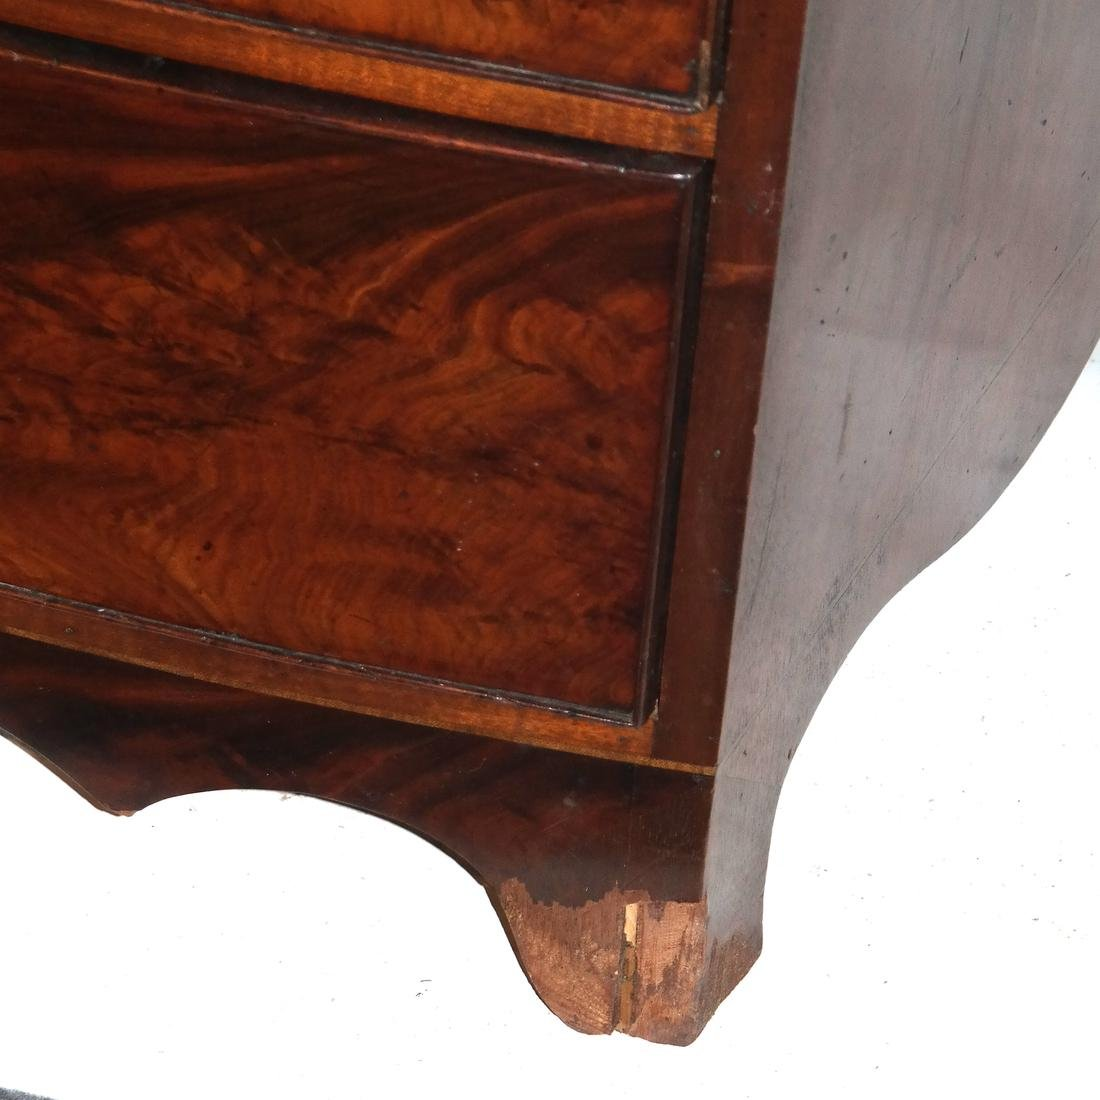 Antique English Bow Front Chest - 2